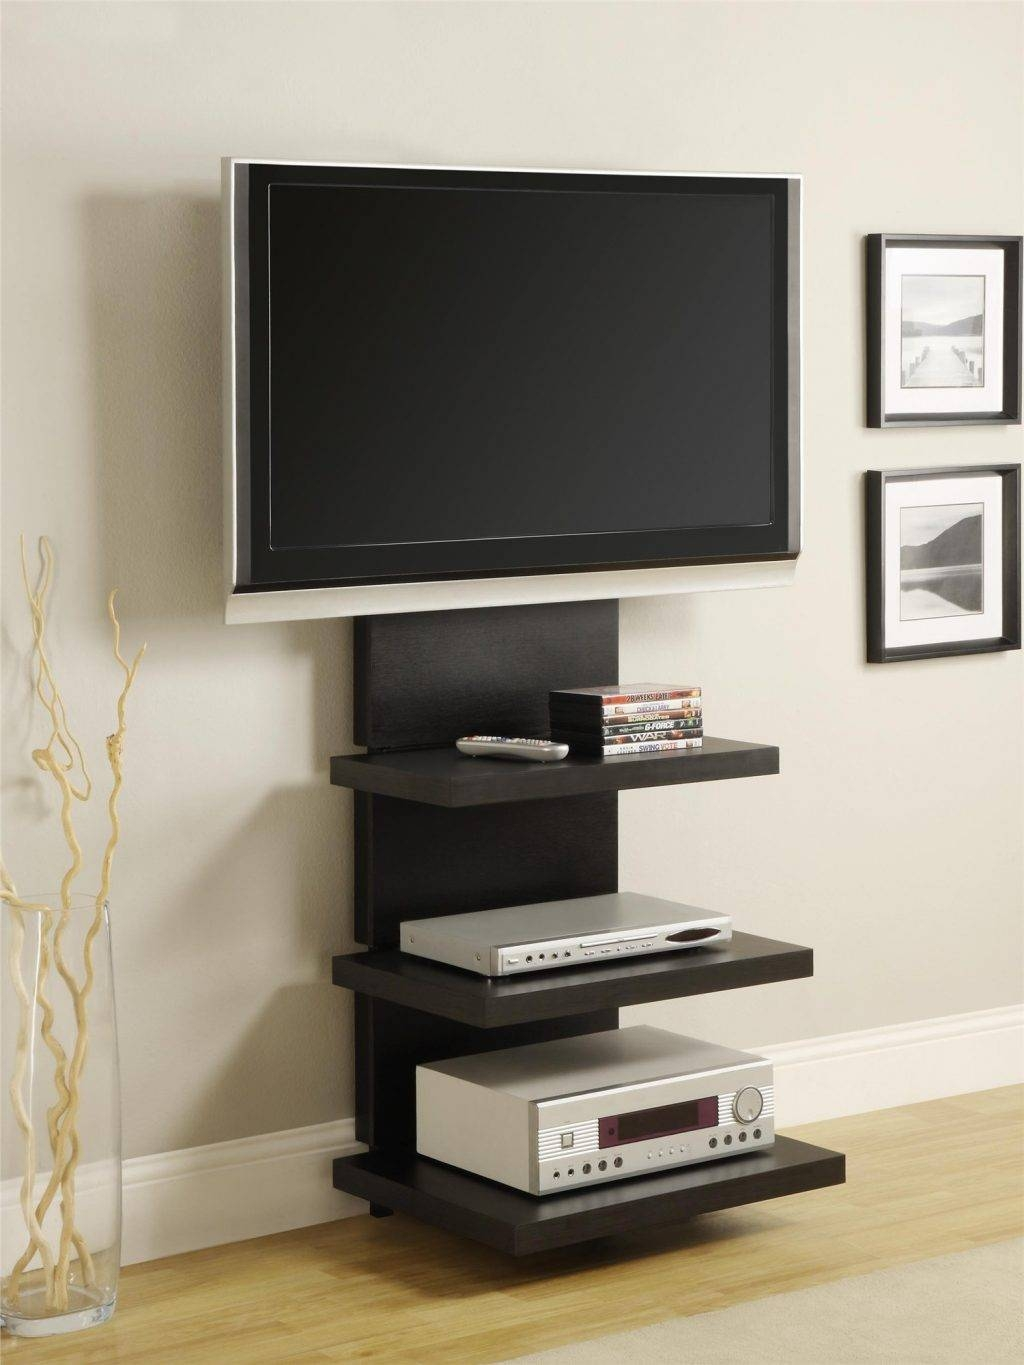 Superb Beautiful Living ~ Led Tv Furniture Design 55 In Tv Stand Small Tv Unit For  In